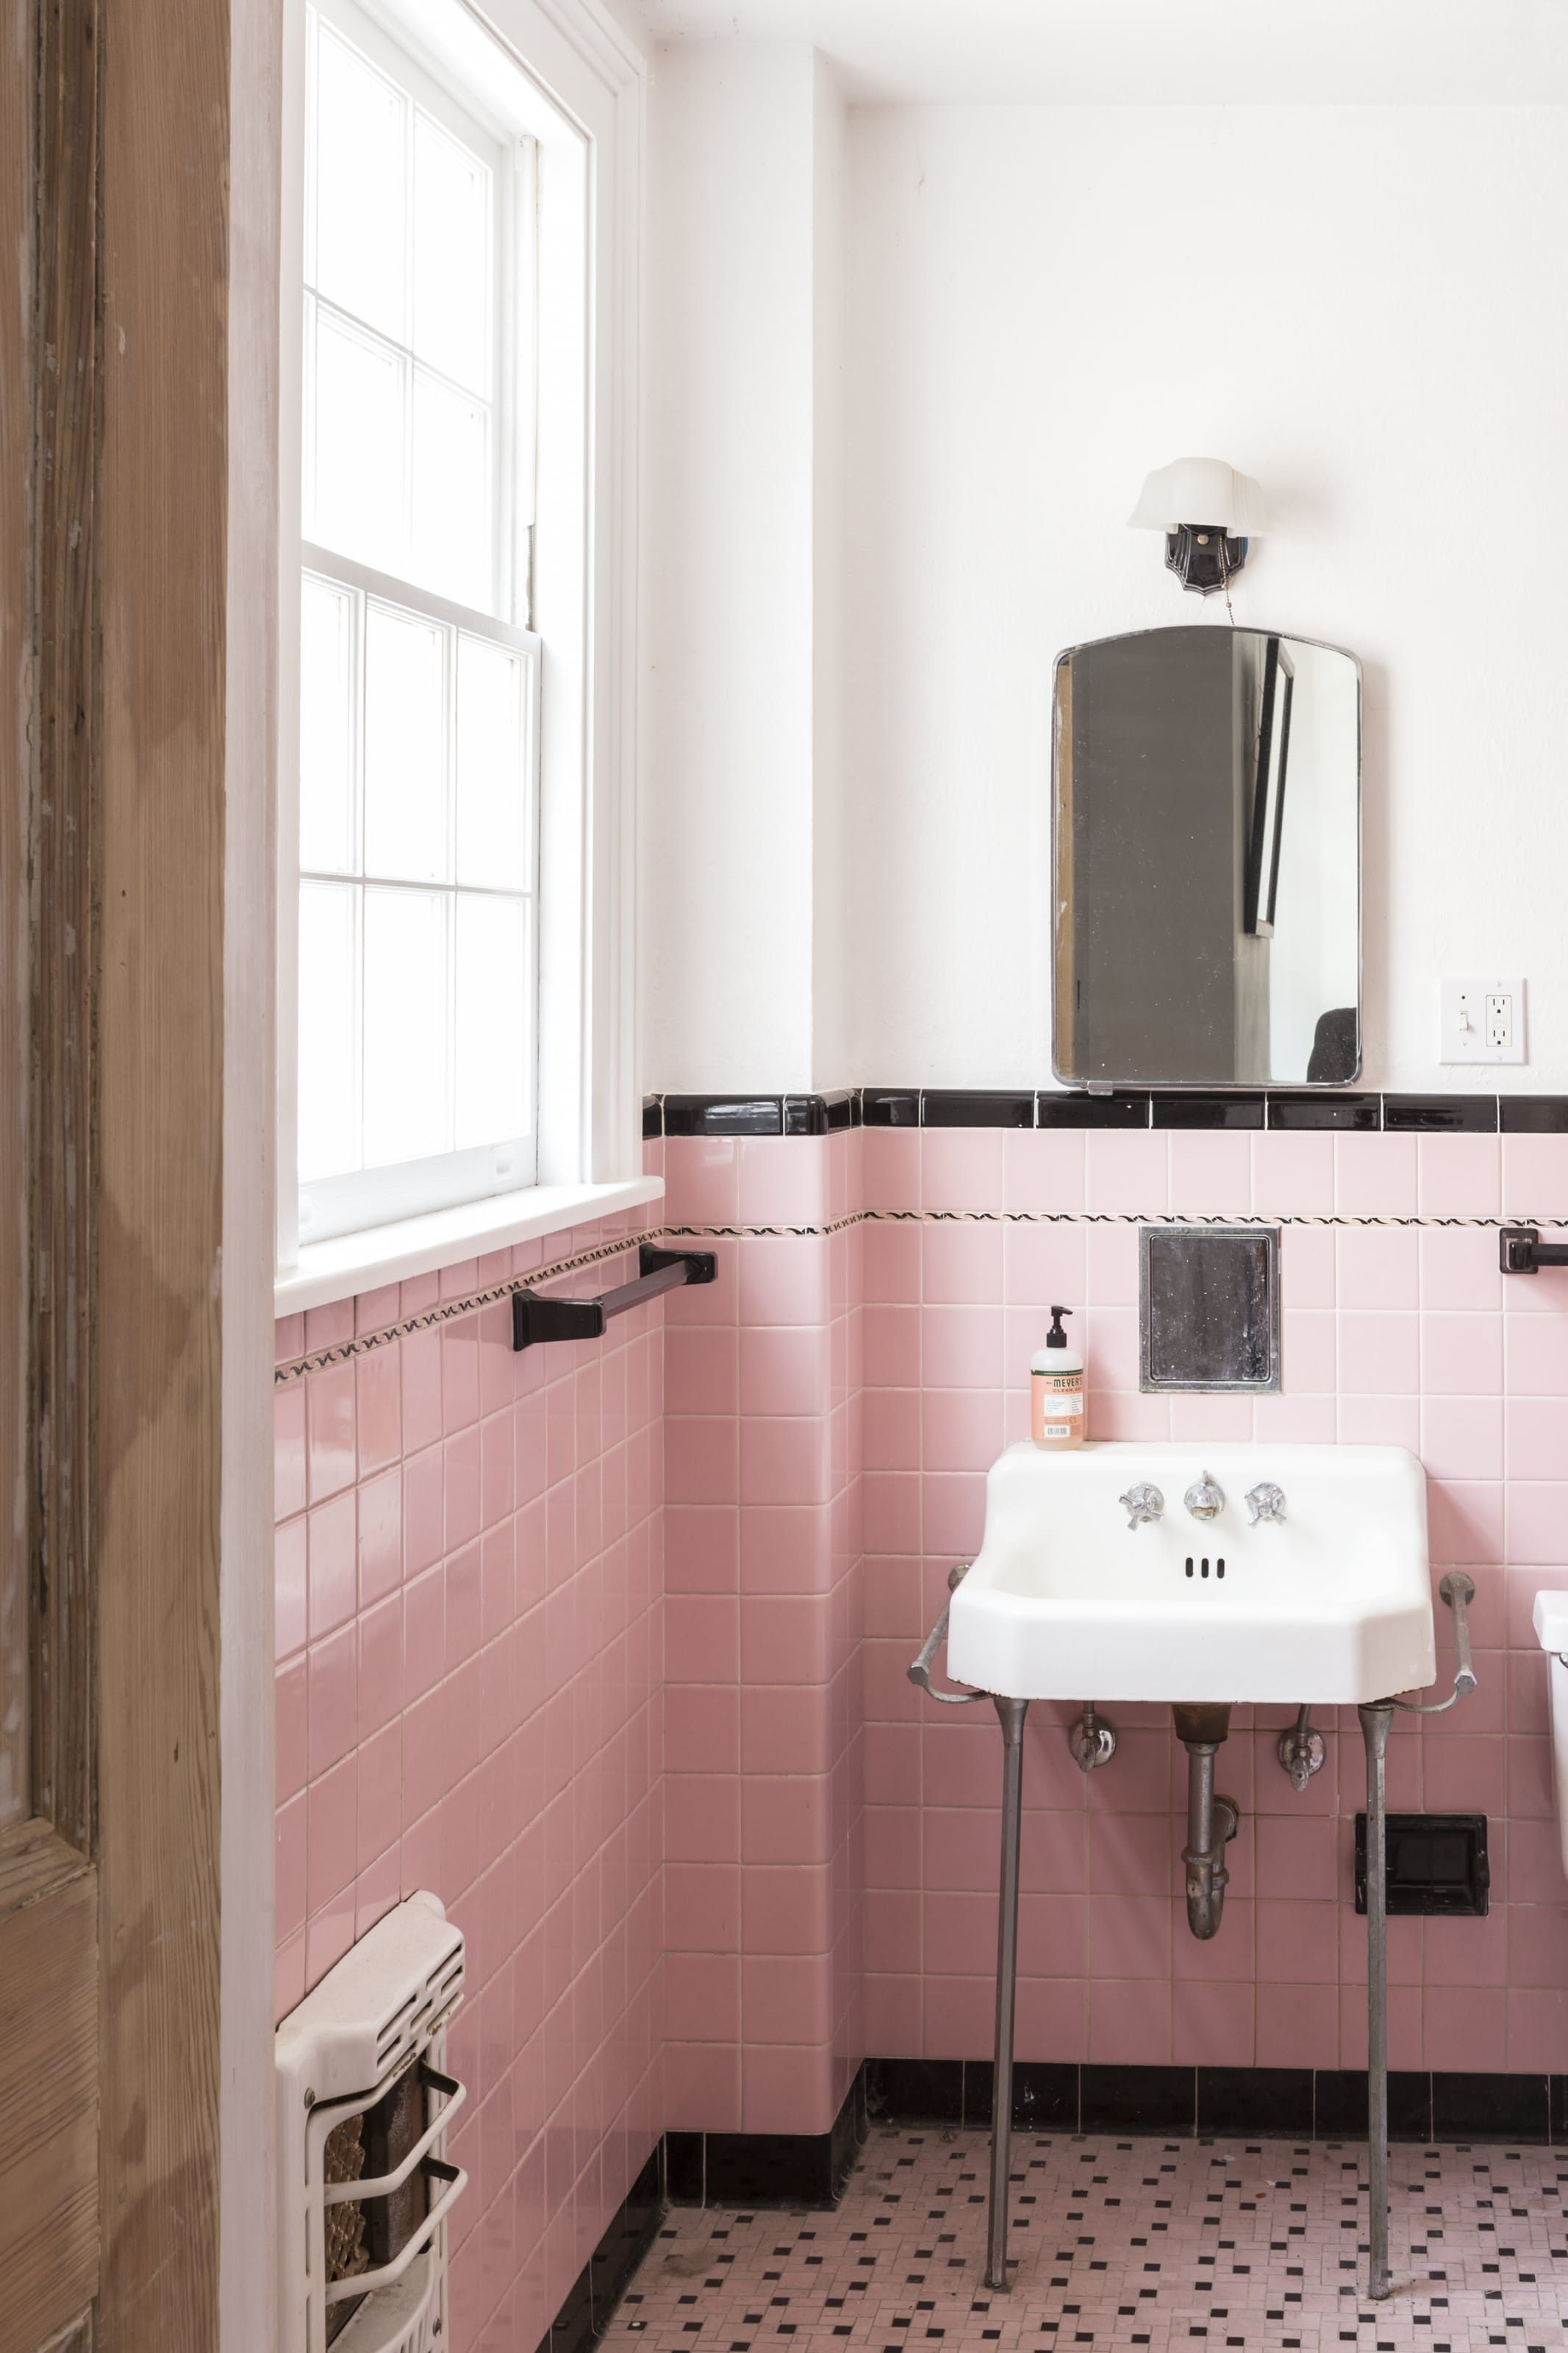 The charm of vintage bathrooms from 1940s interior design - Bathroom Toilets